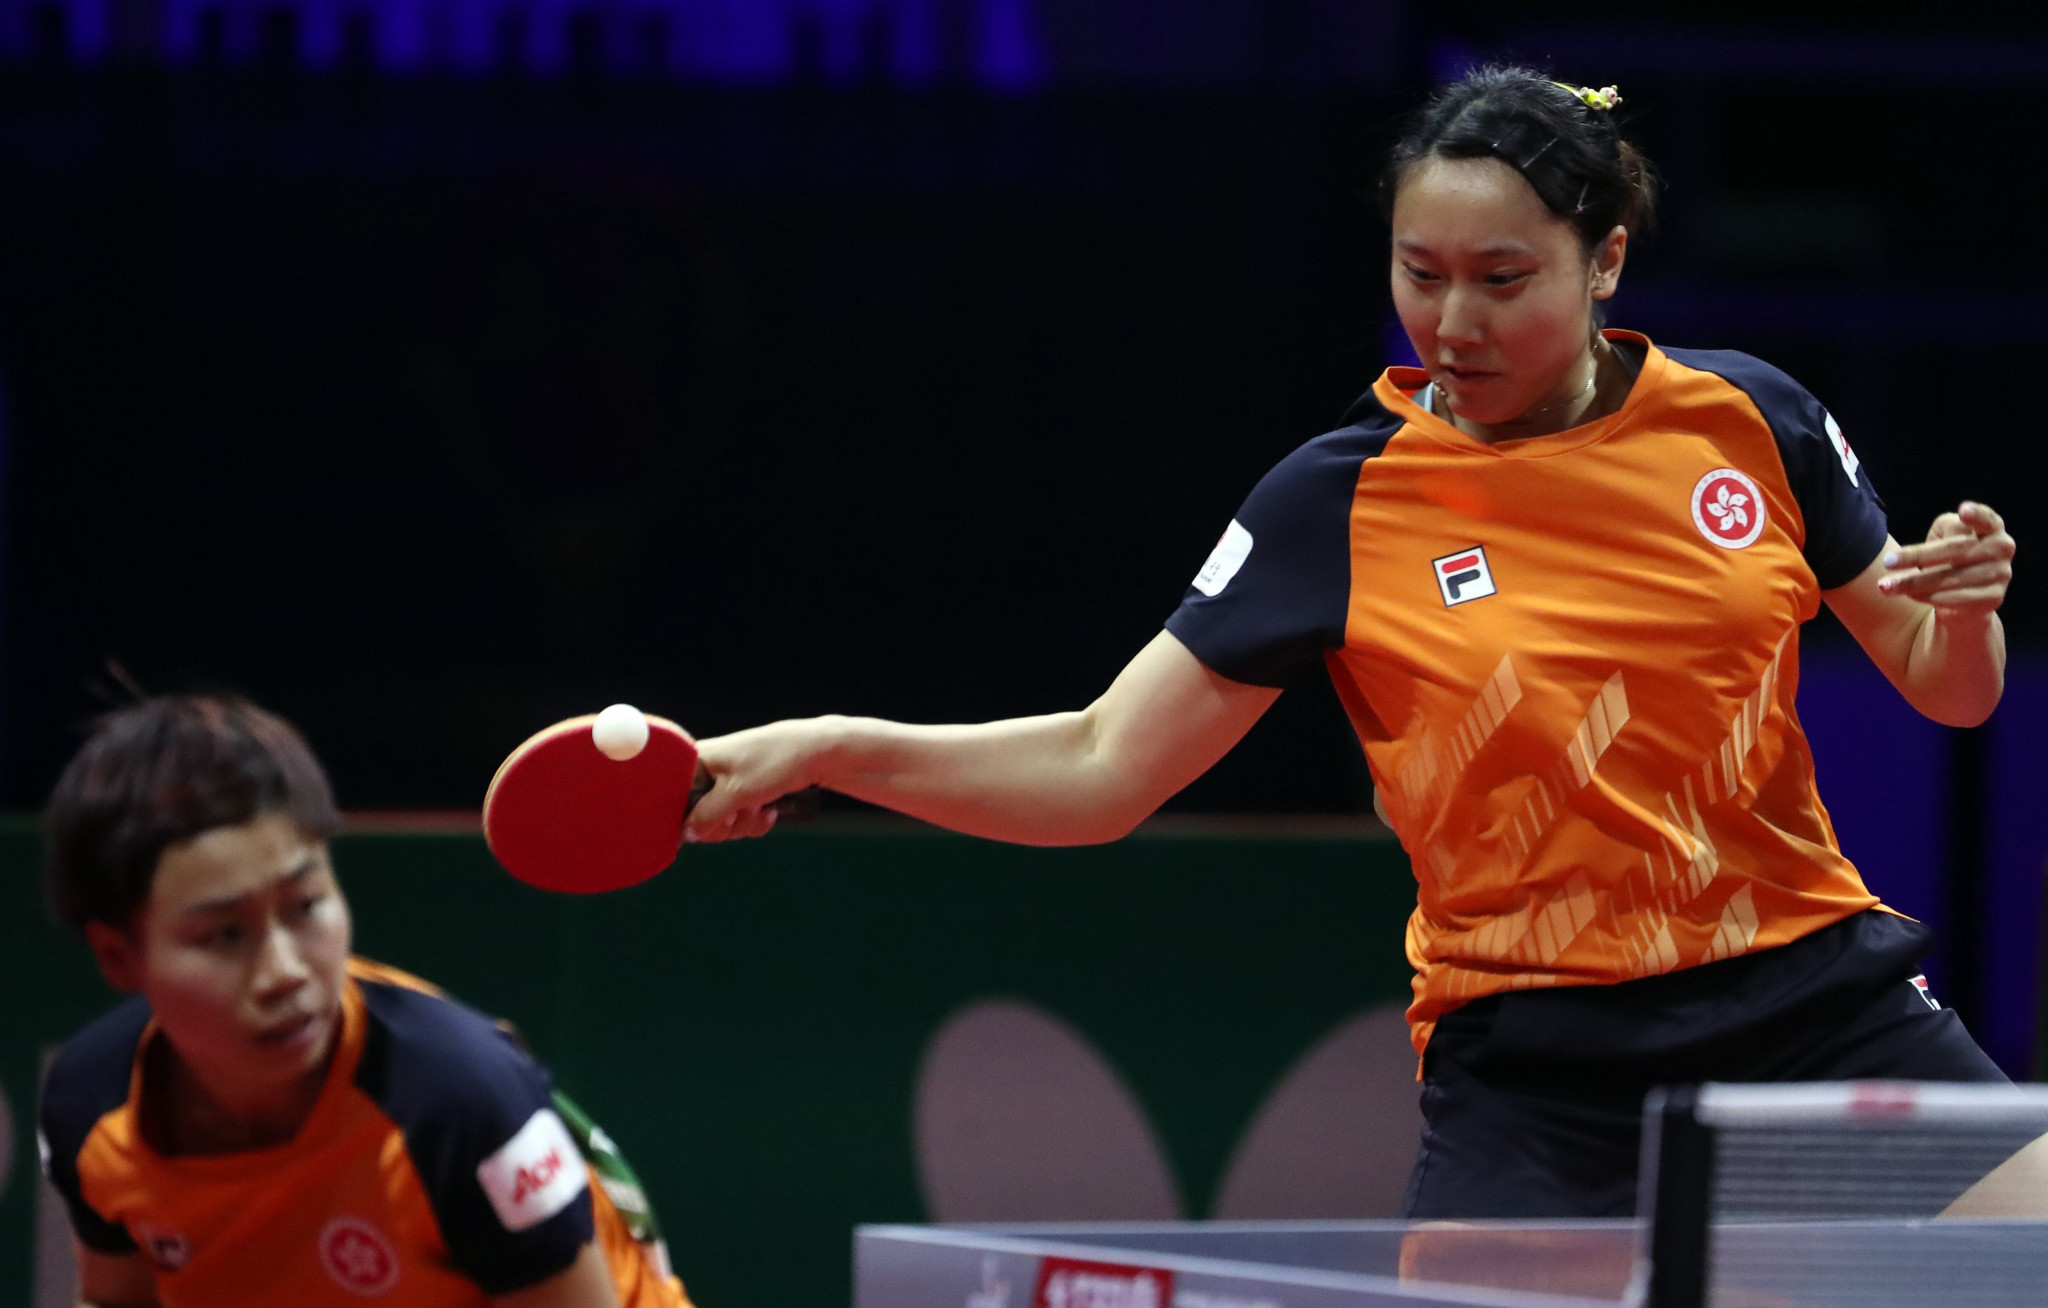 Hong Kong has the maximum of six Olympic quota spots in table tennis ©Getty Images